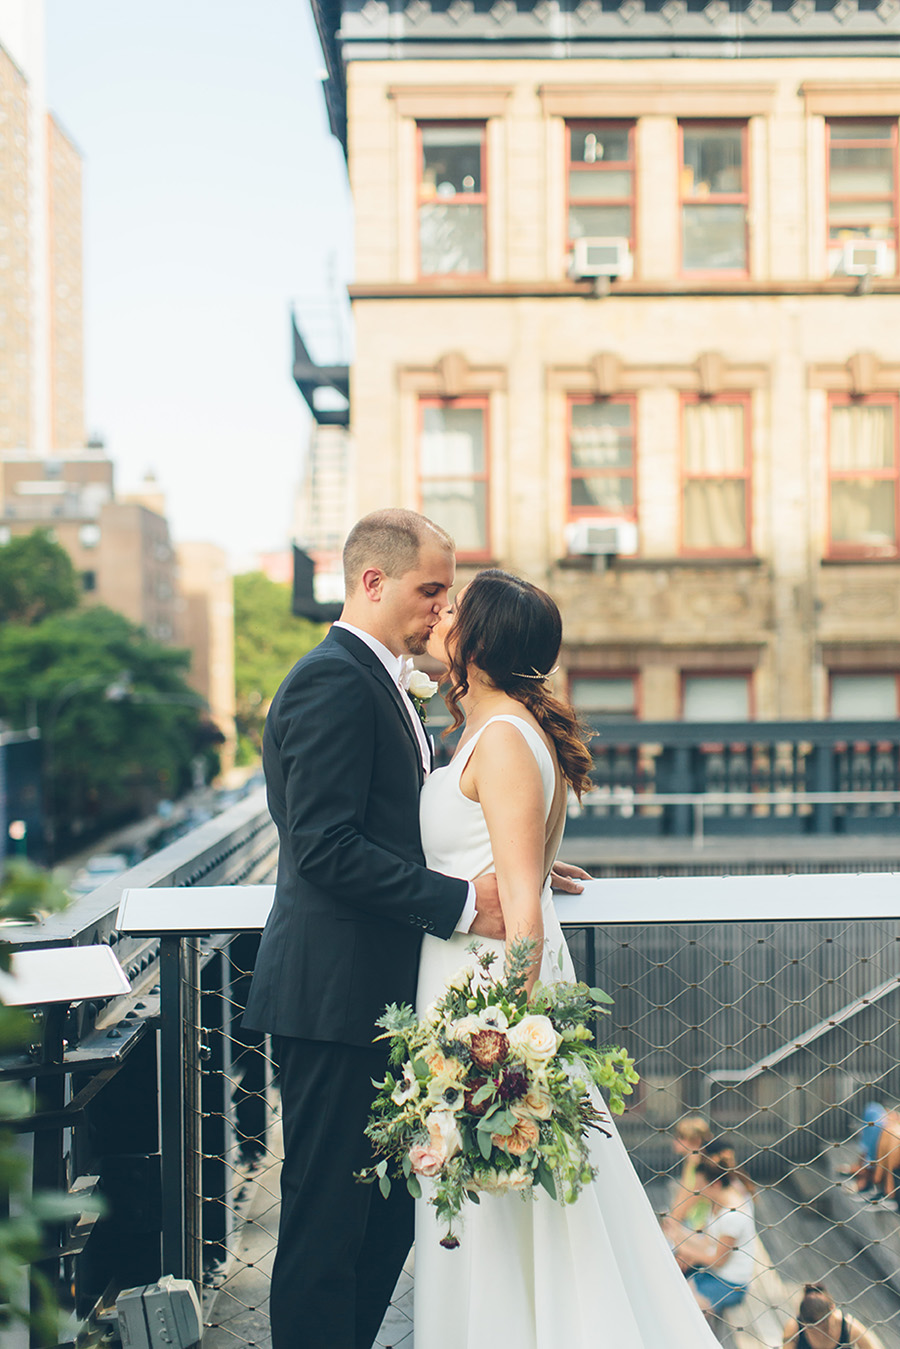 NEW-YORK-CITY-WEDDING-PHOTOGRAPHER-CURRENT-CHELSEAPIERS-THE-HIGHLINE-DREAM-HOTELS-CHELSEA-MANHATTAN-BROOKLYN-WEDDING-PHOTOGRAPHY-0036.jpg